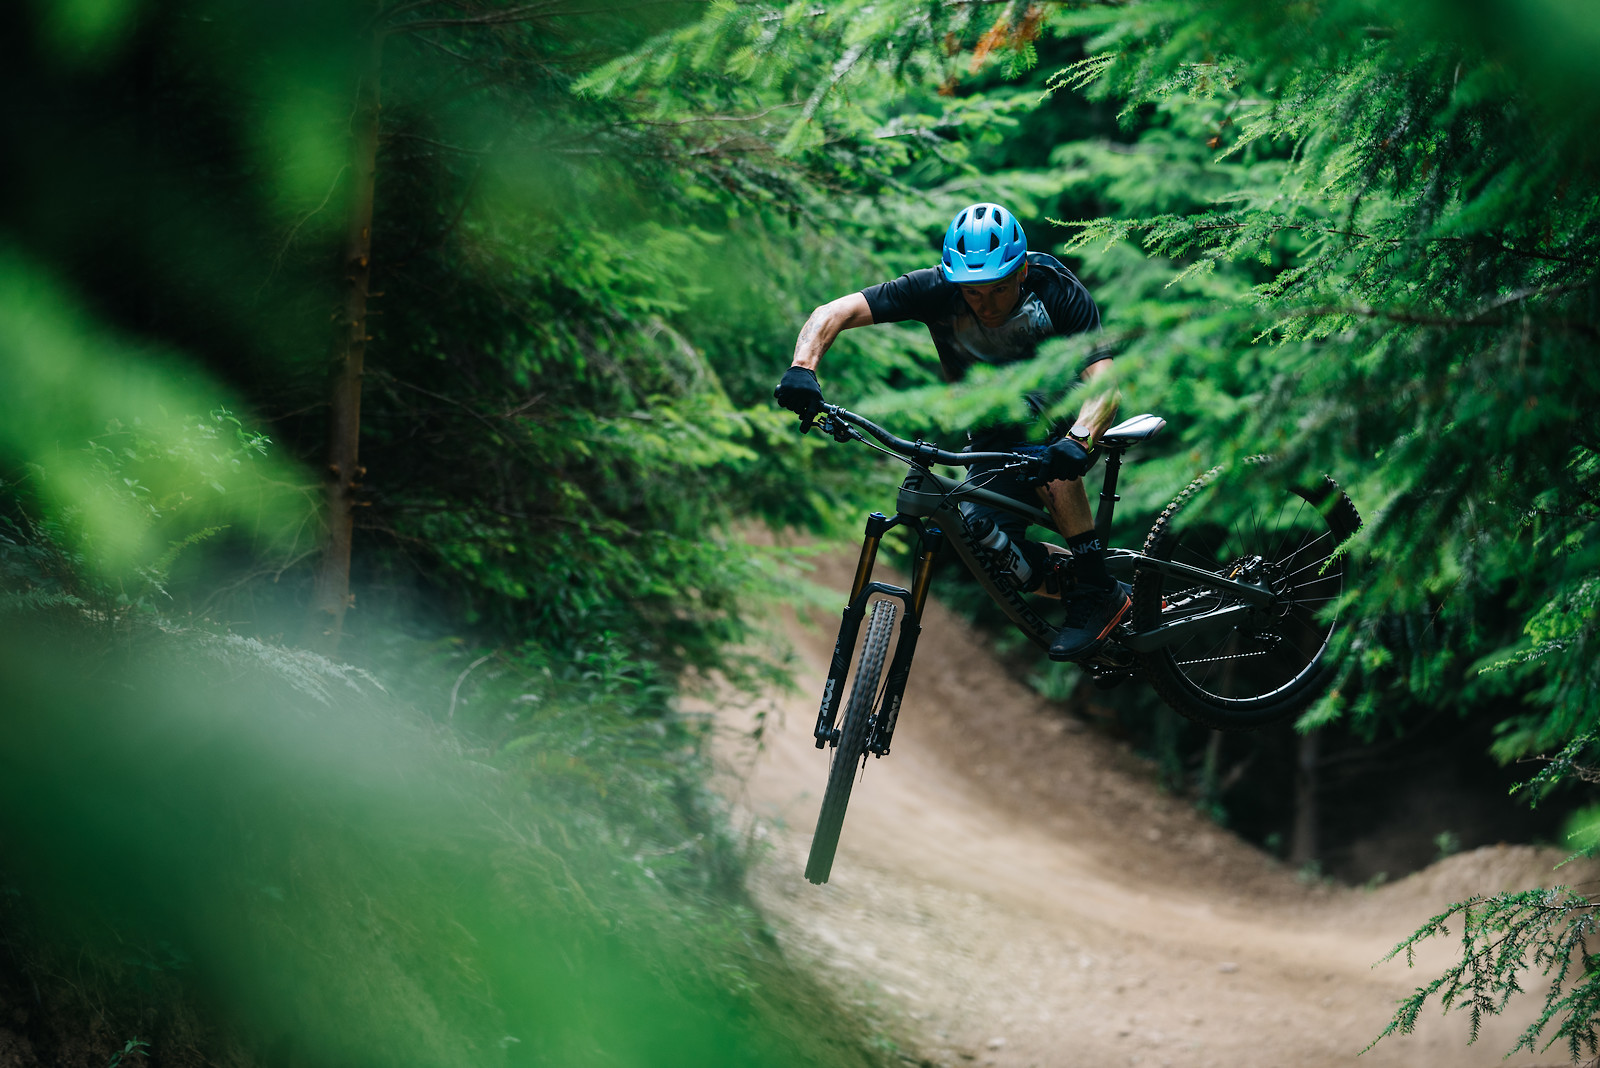 Tree Tunnel - Schilly - Mountain Biking Pictures - Vital MTB